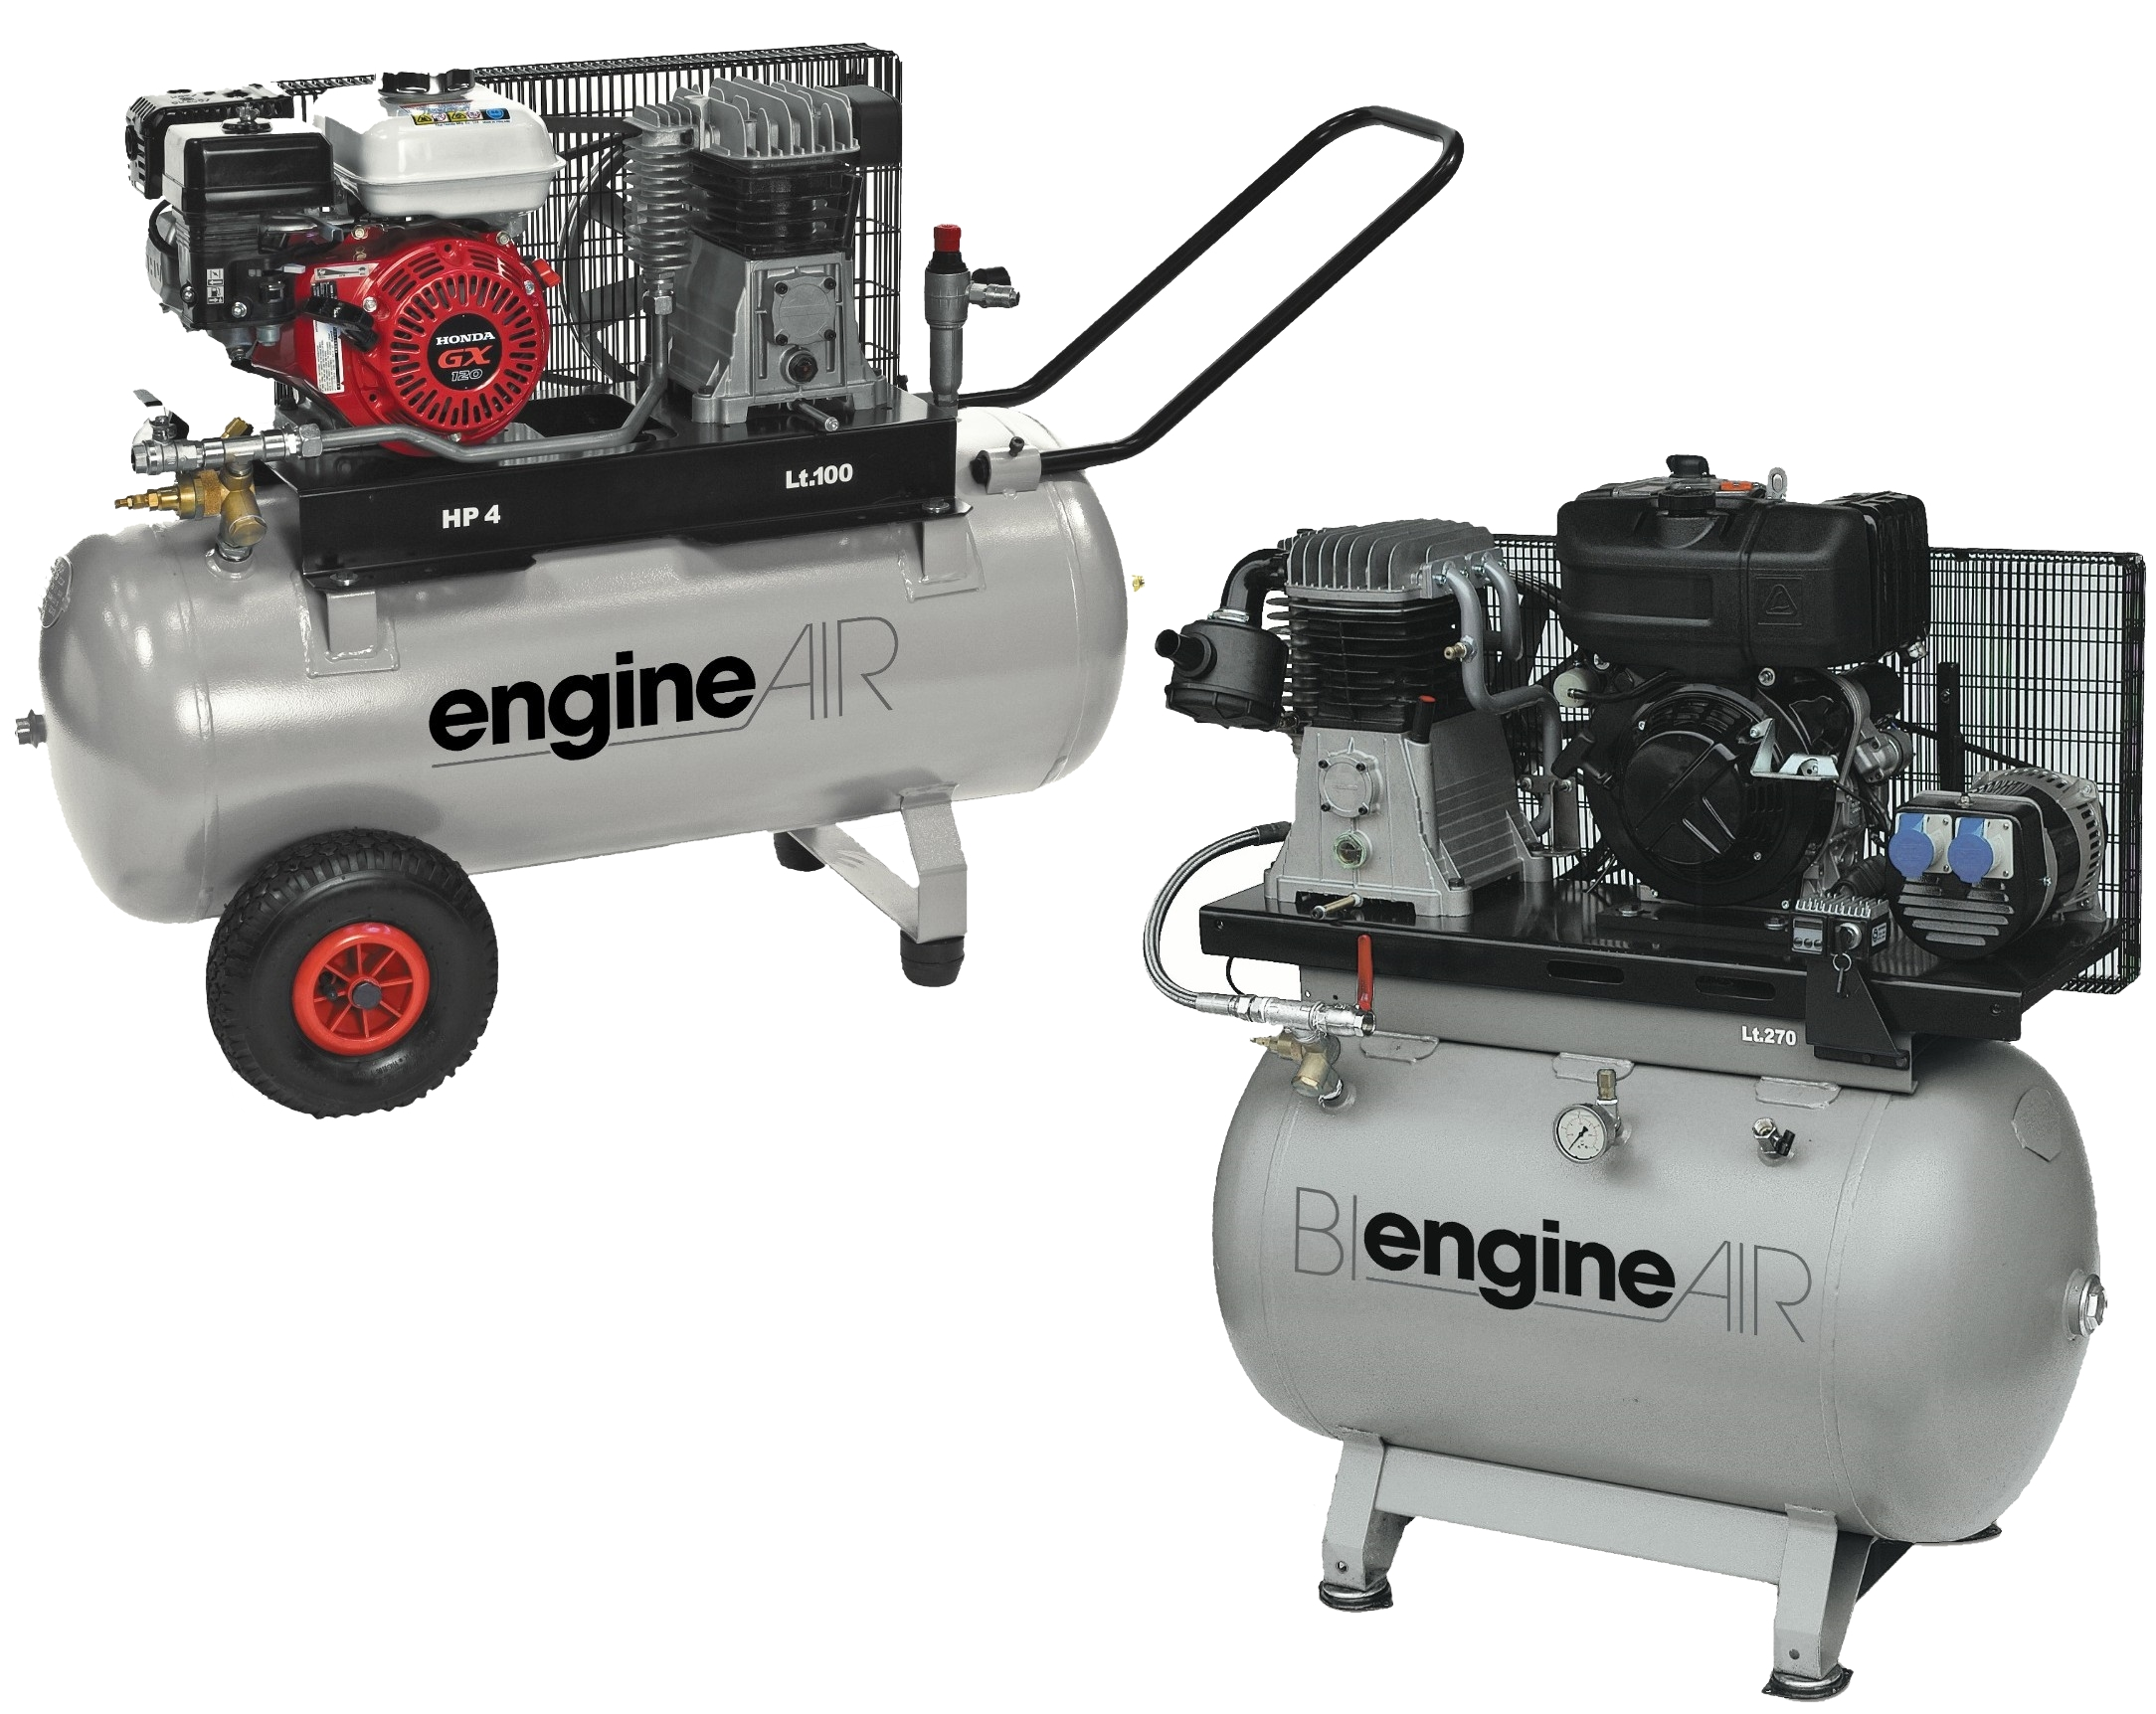 EngineAIR / BIengineAIR